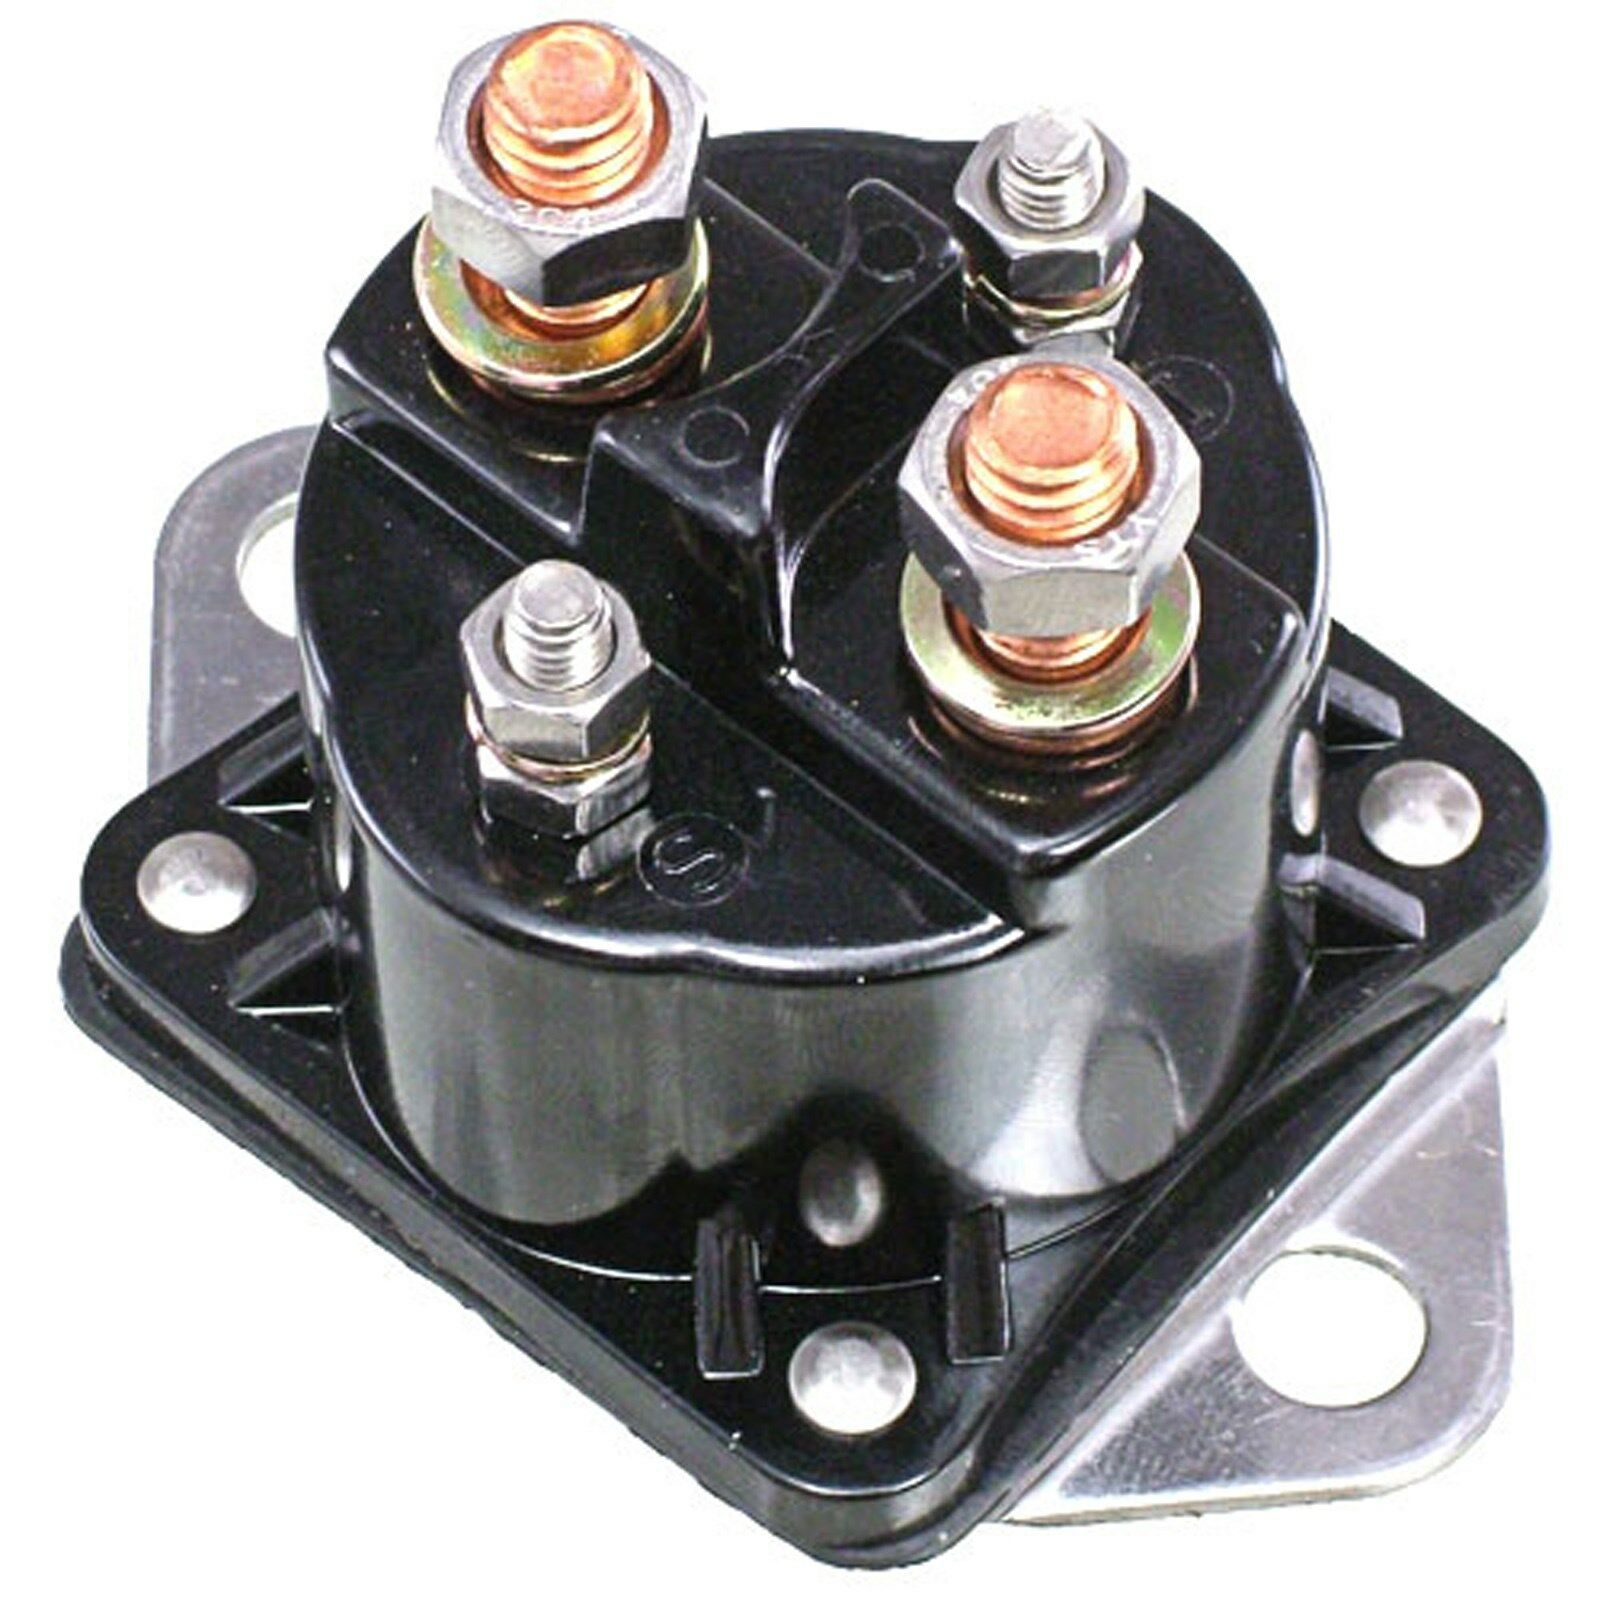 Wiring Diagram For Mercury Trim Solenoid 89 68258a4 Detailed Boat Solenoids Marine Mercruiser Outboard Relay Switch 12v New